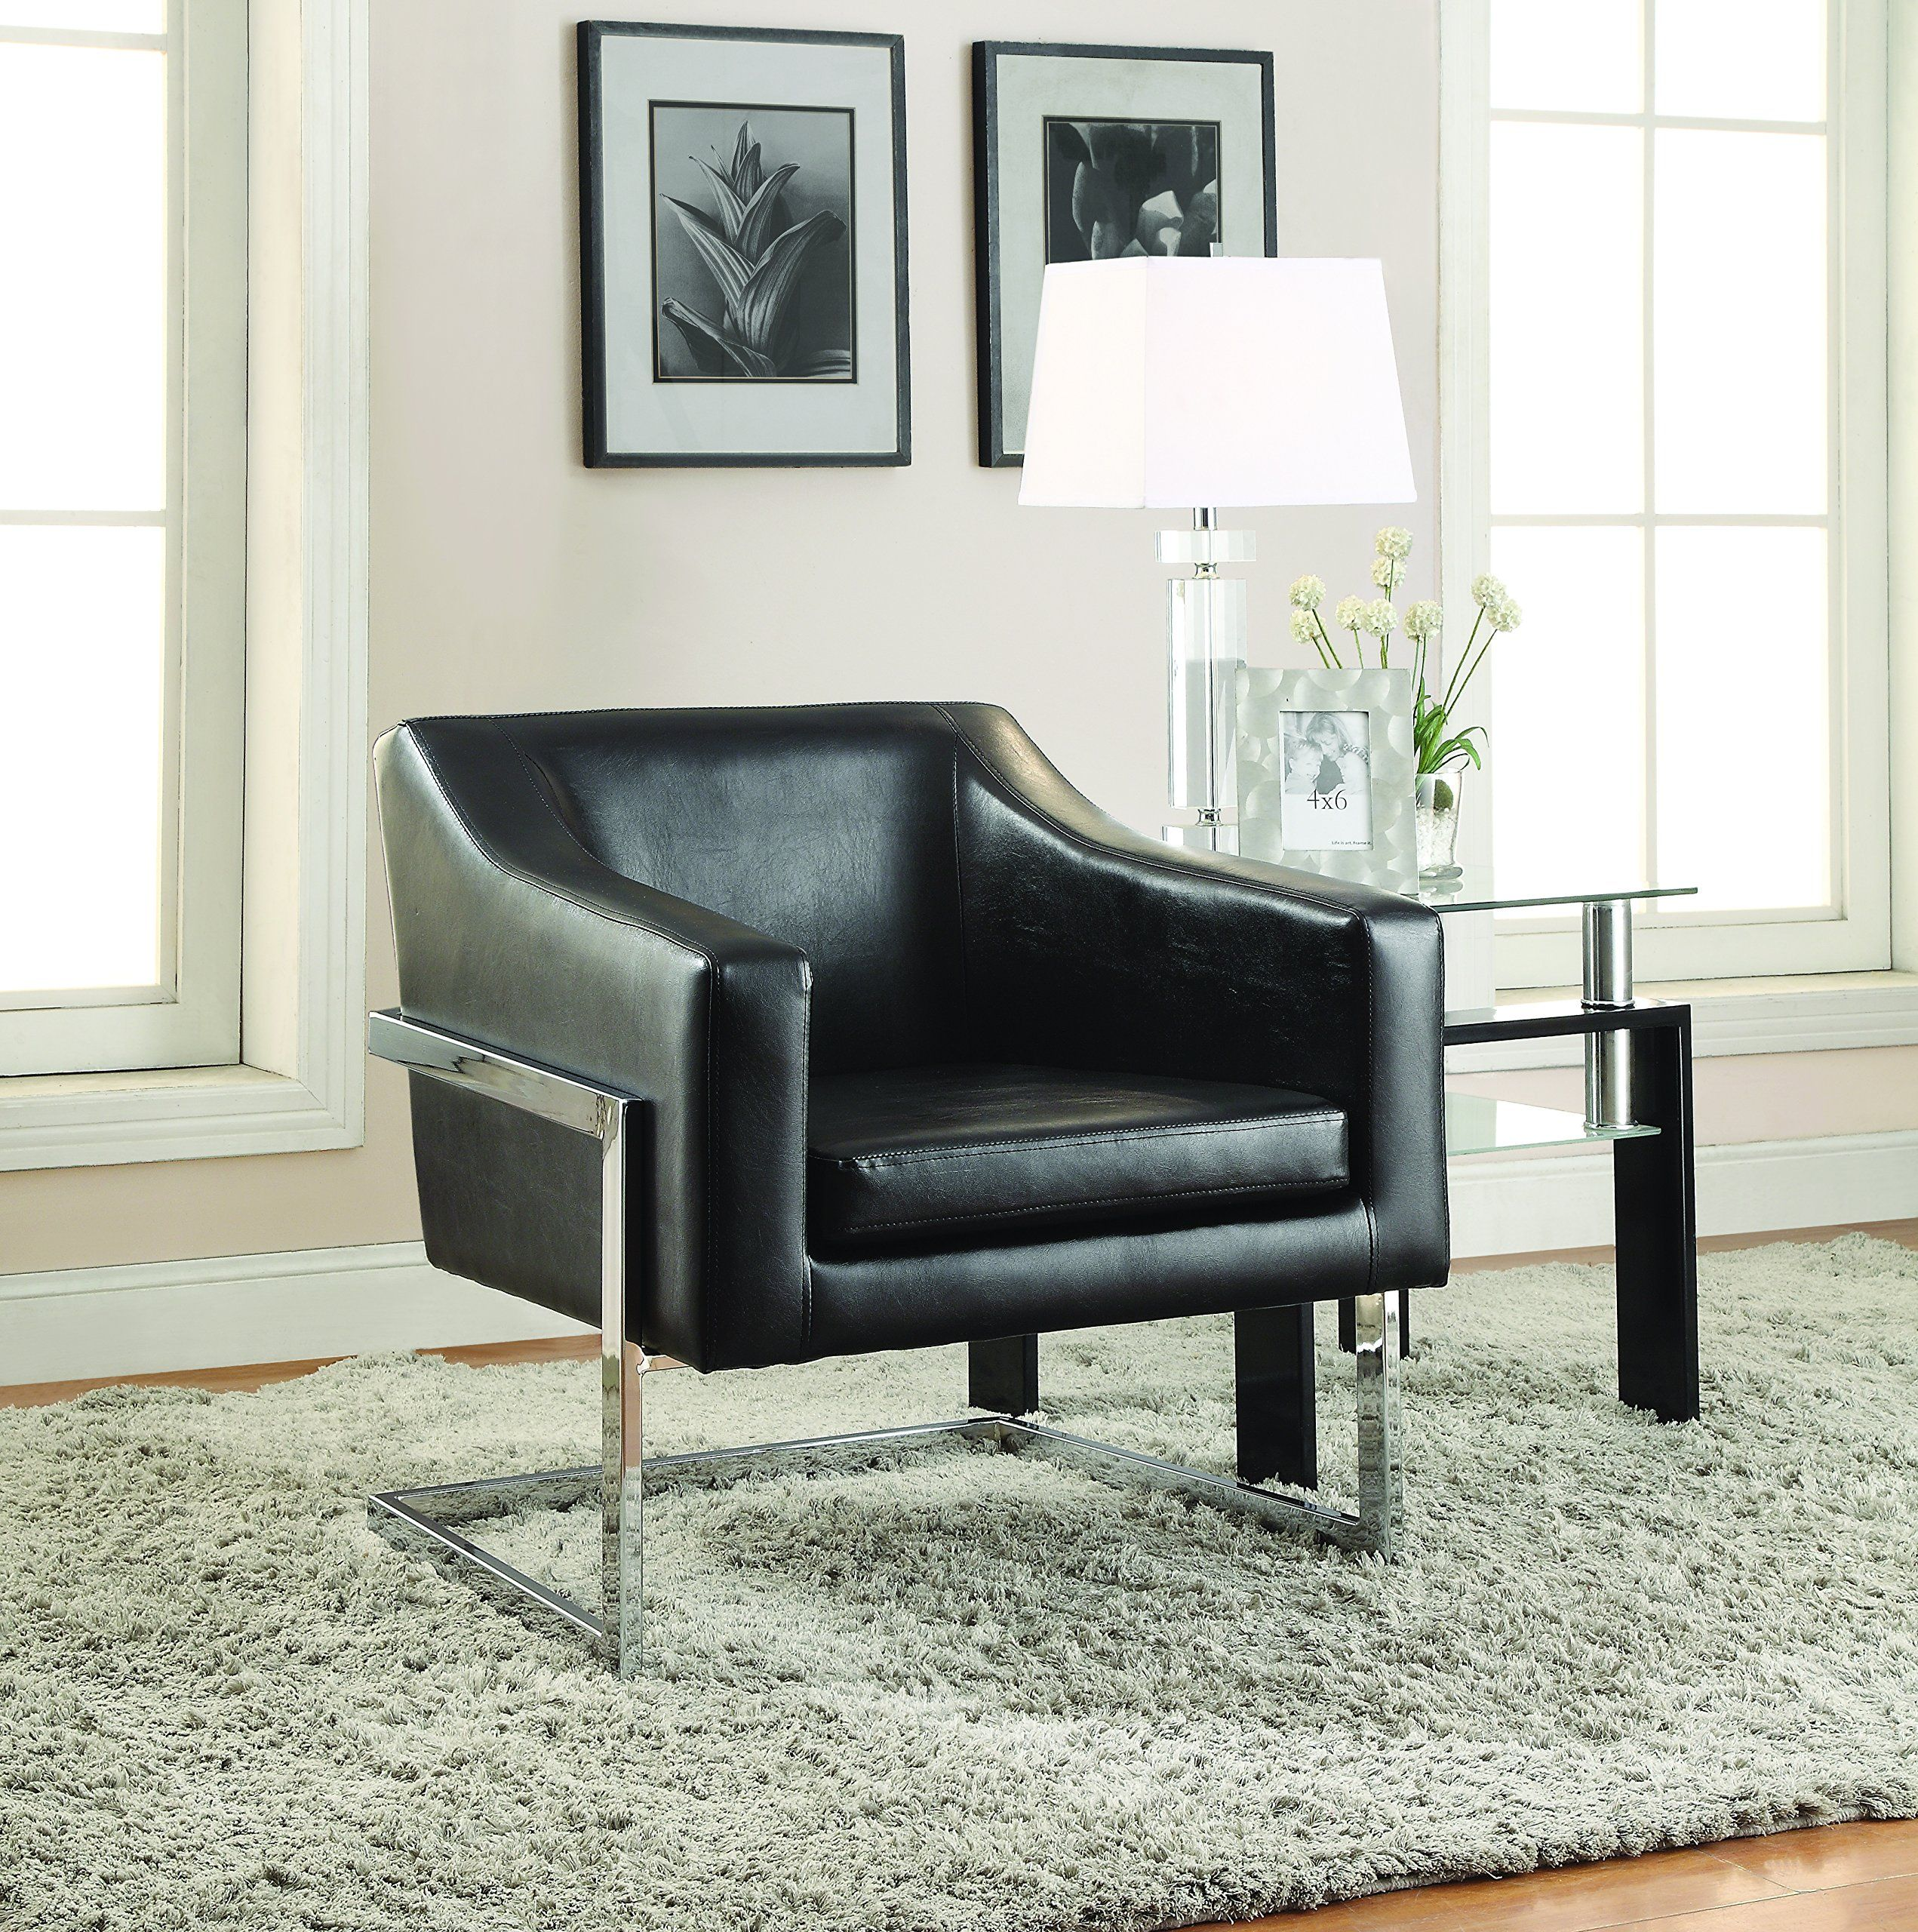 Coaster Contemporary Black Faux Leather Upholstered Accent